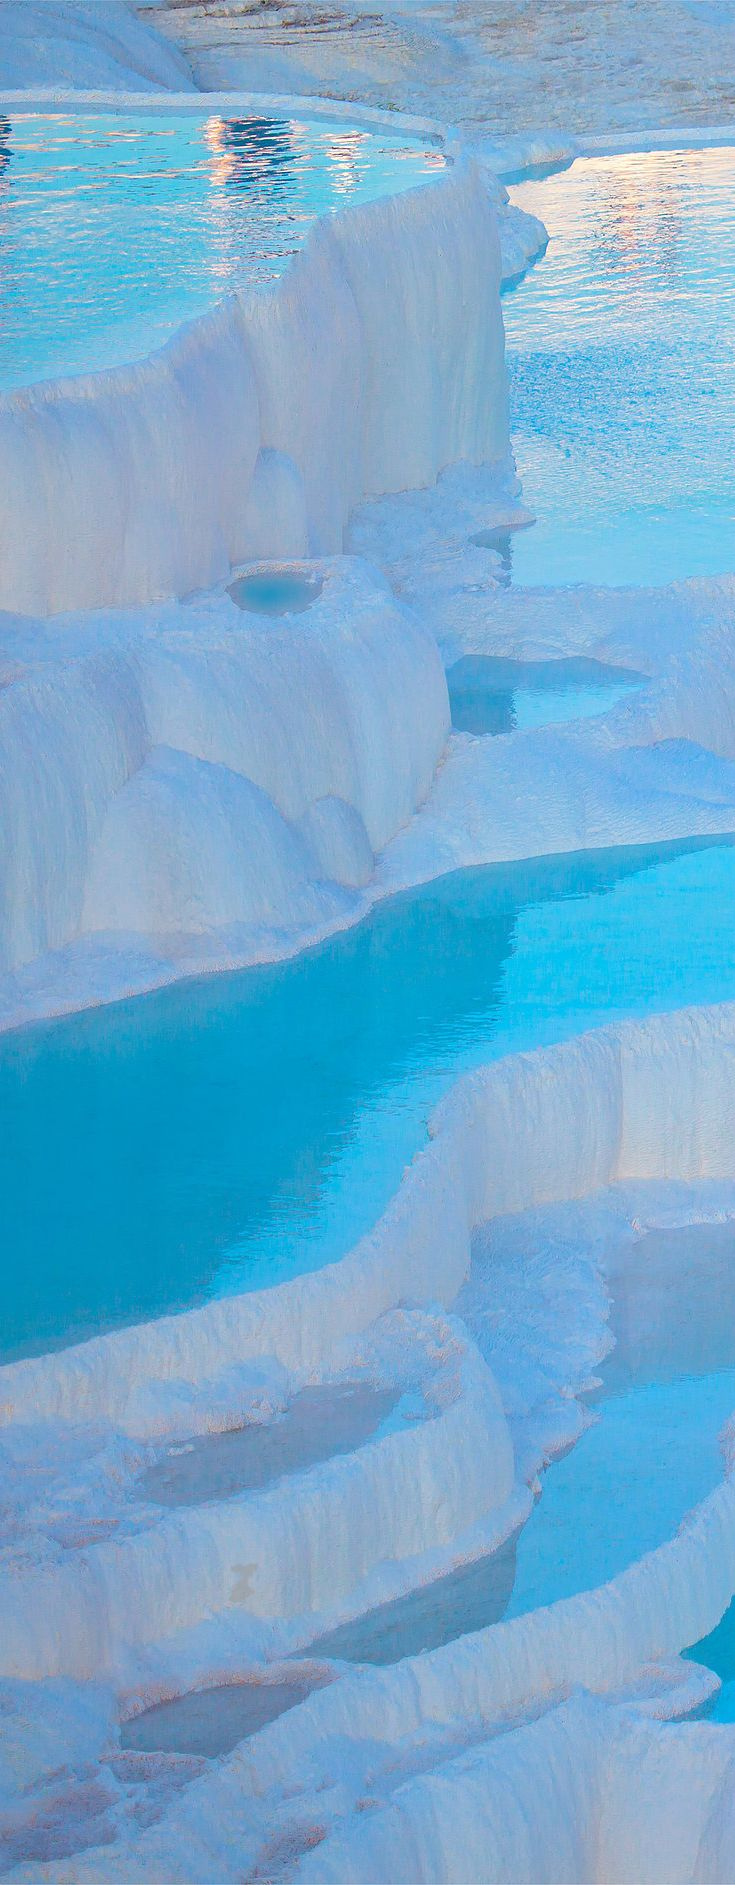 Hot Springs at Pamukkale | Turkey